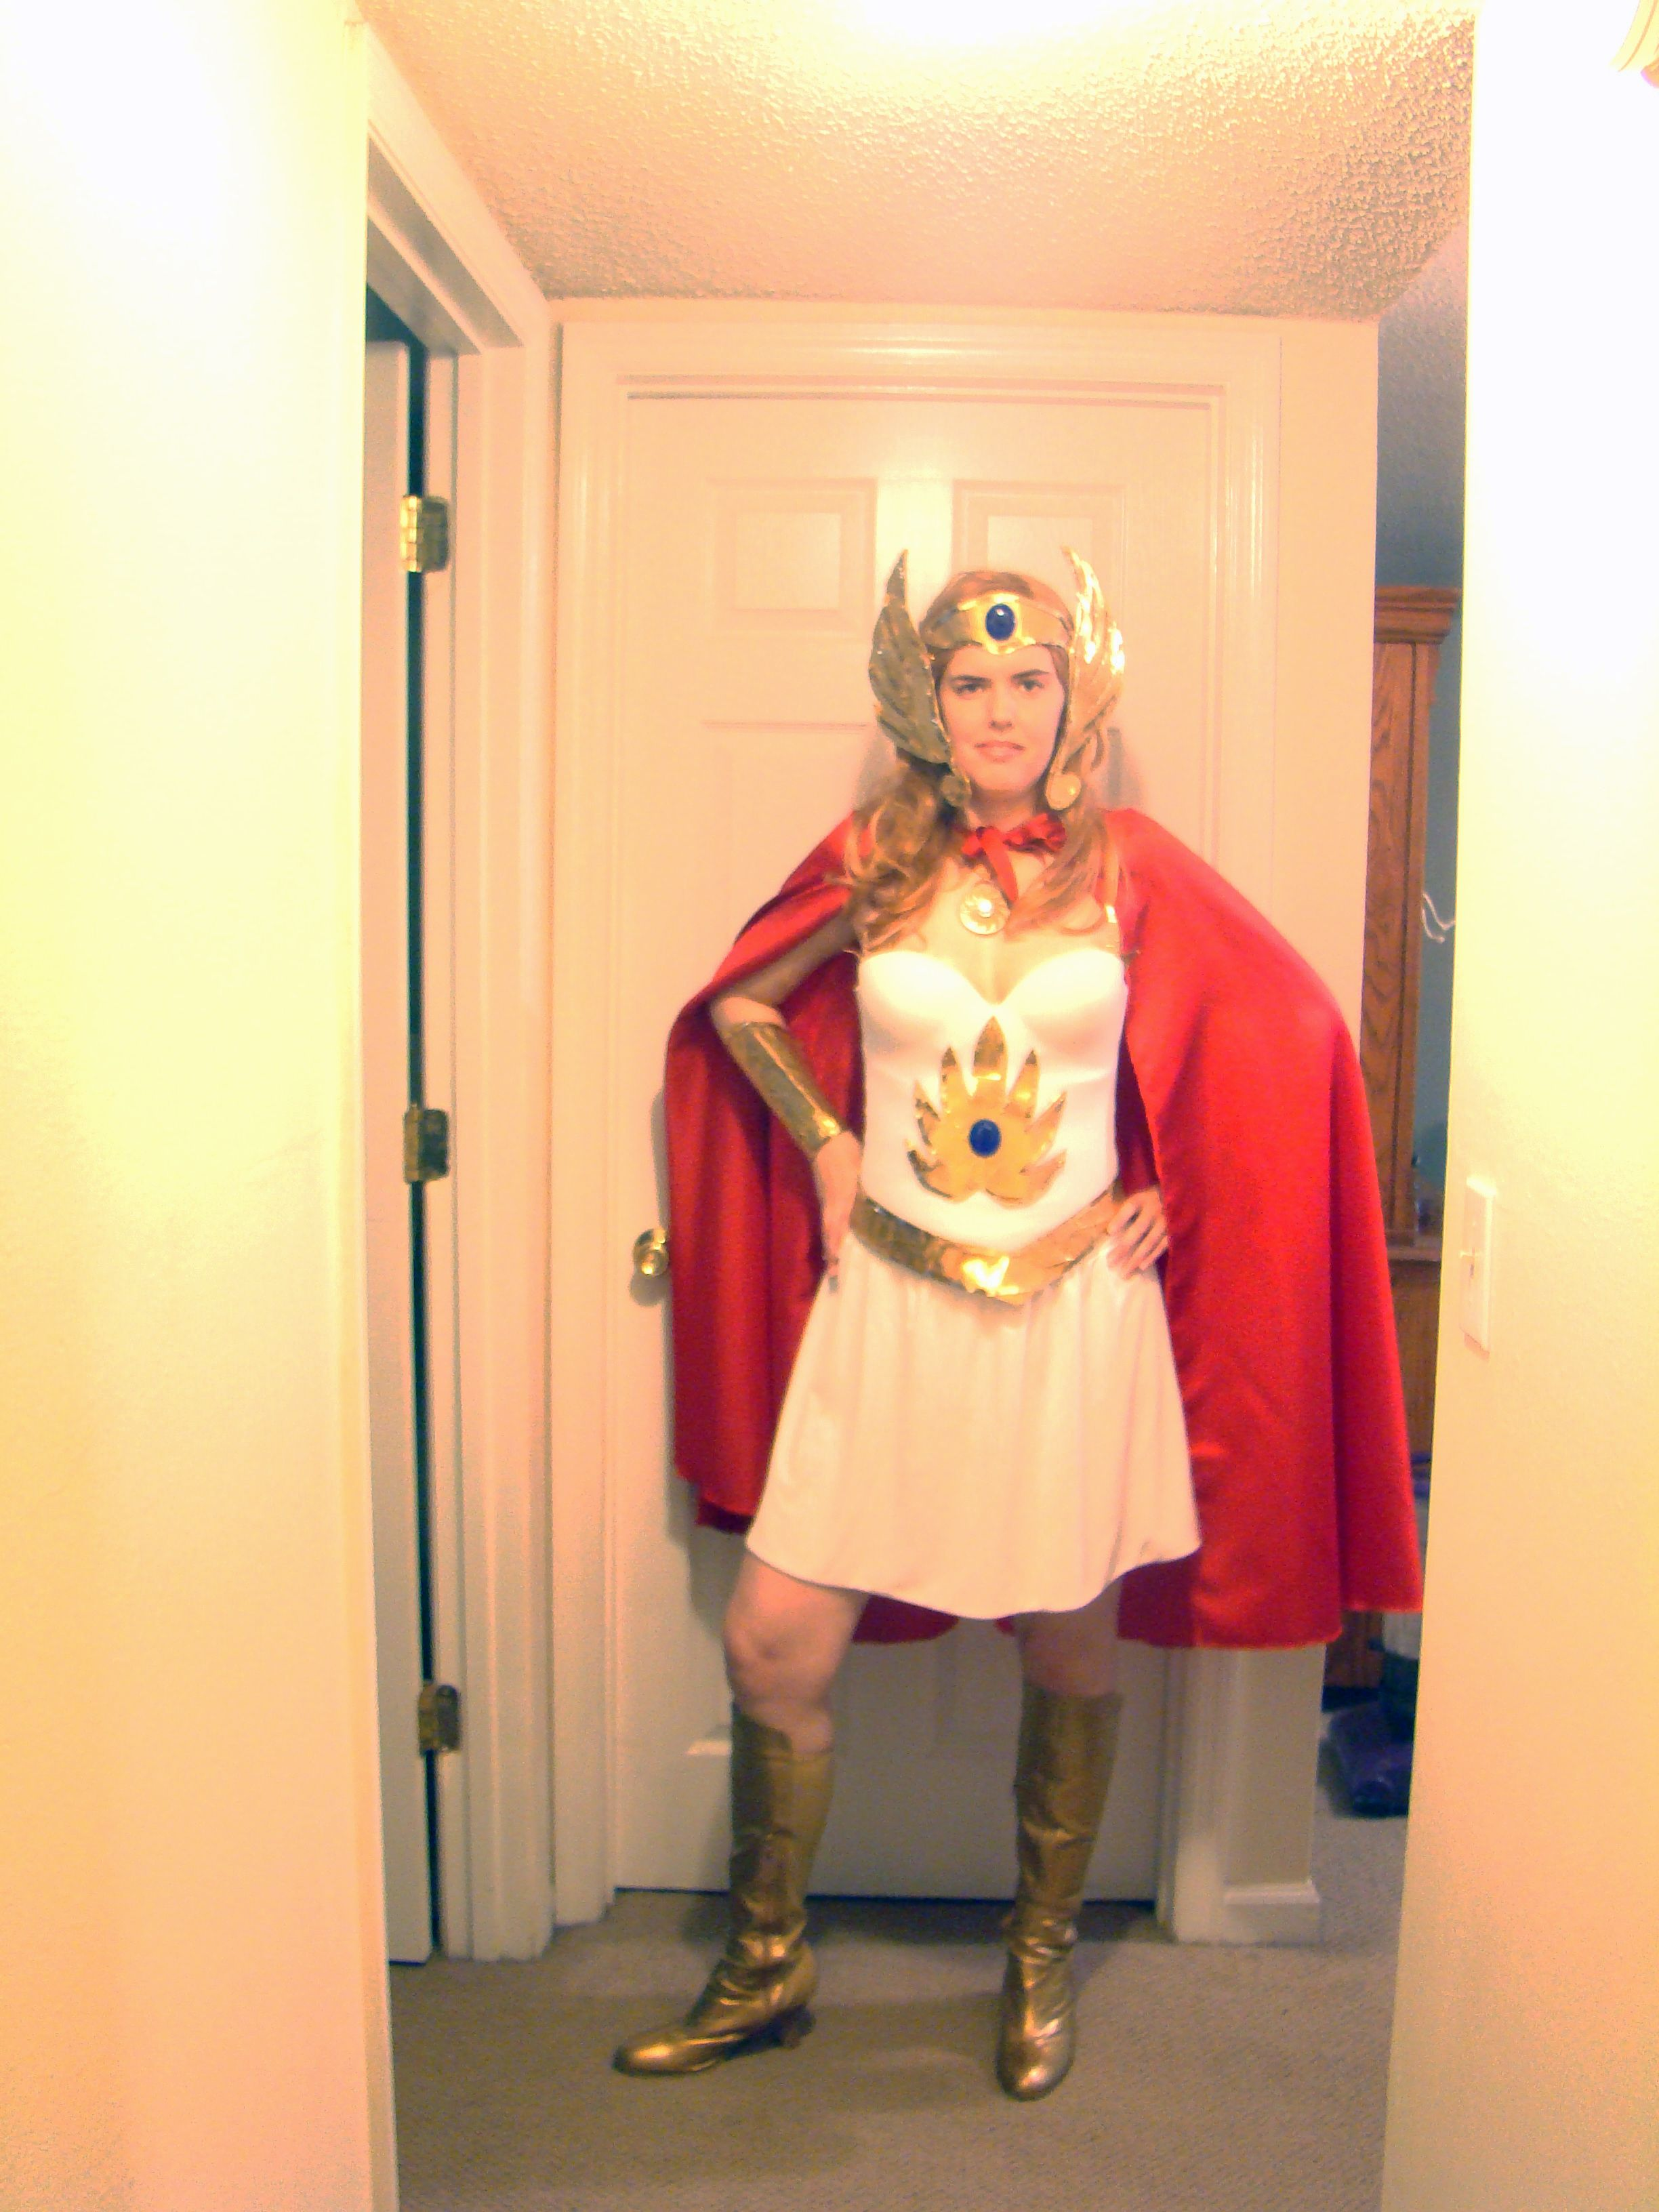 Diy Homemade Duct Tape She Ra Costume I Sewed The Cape